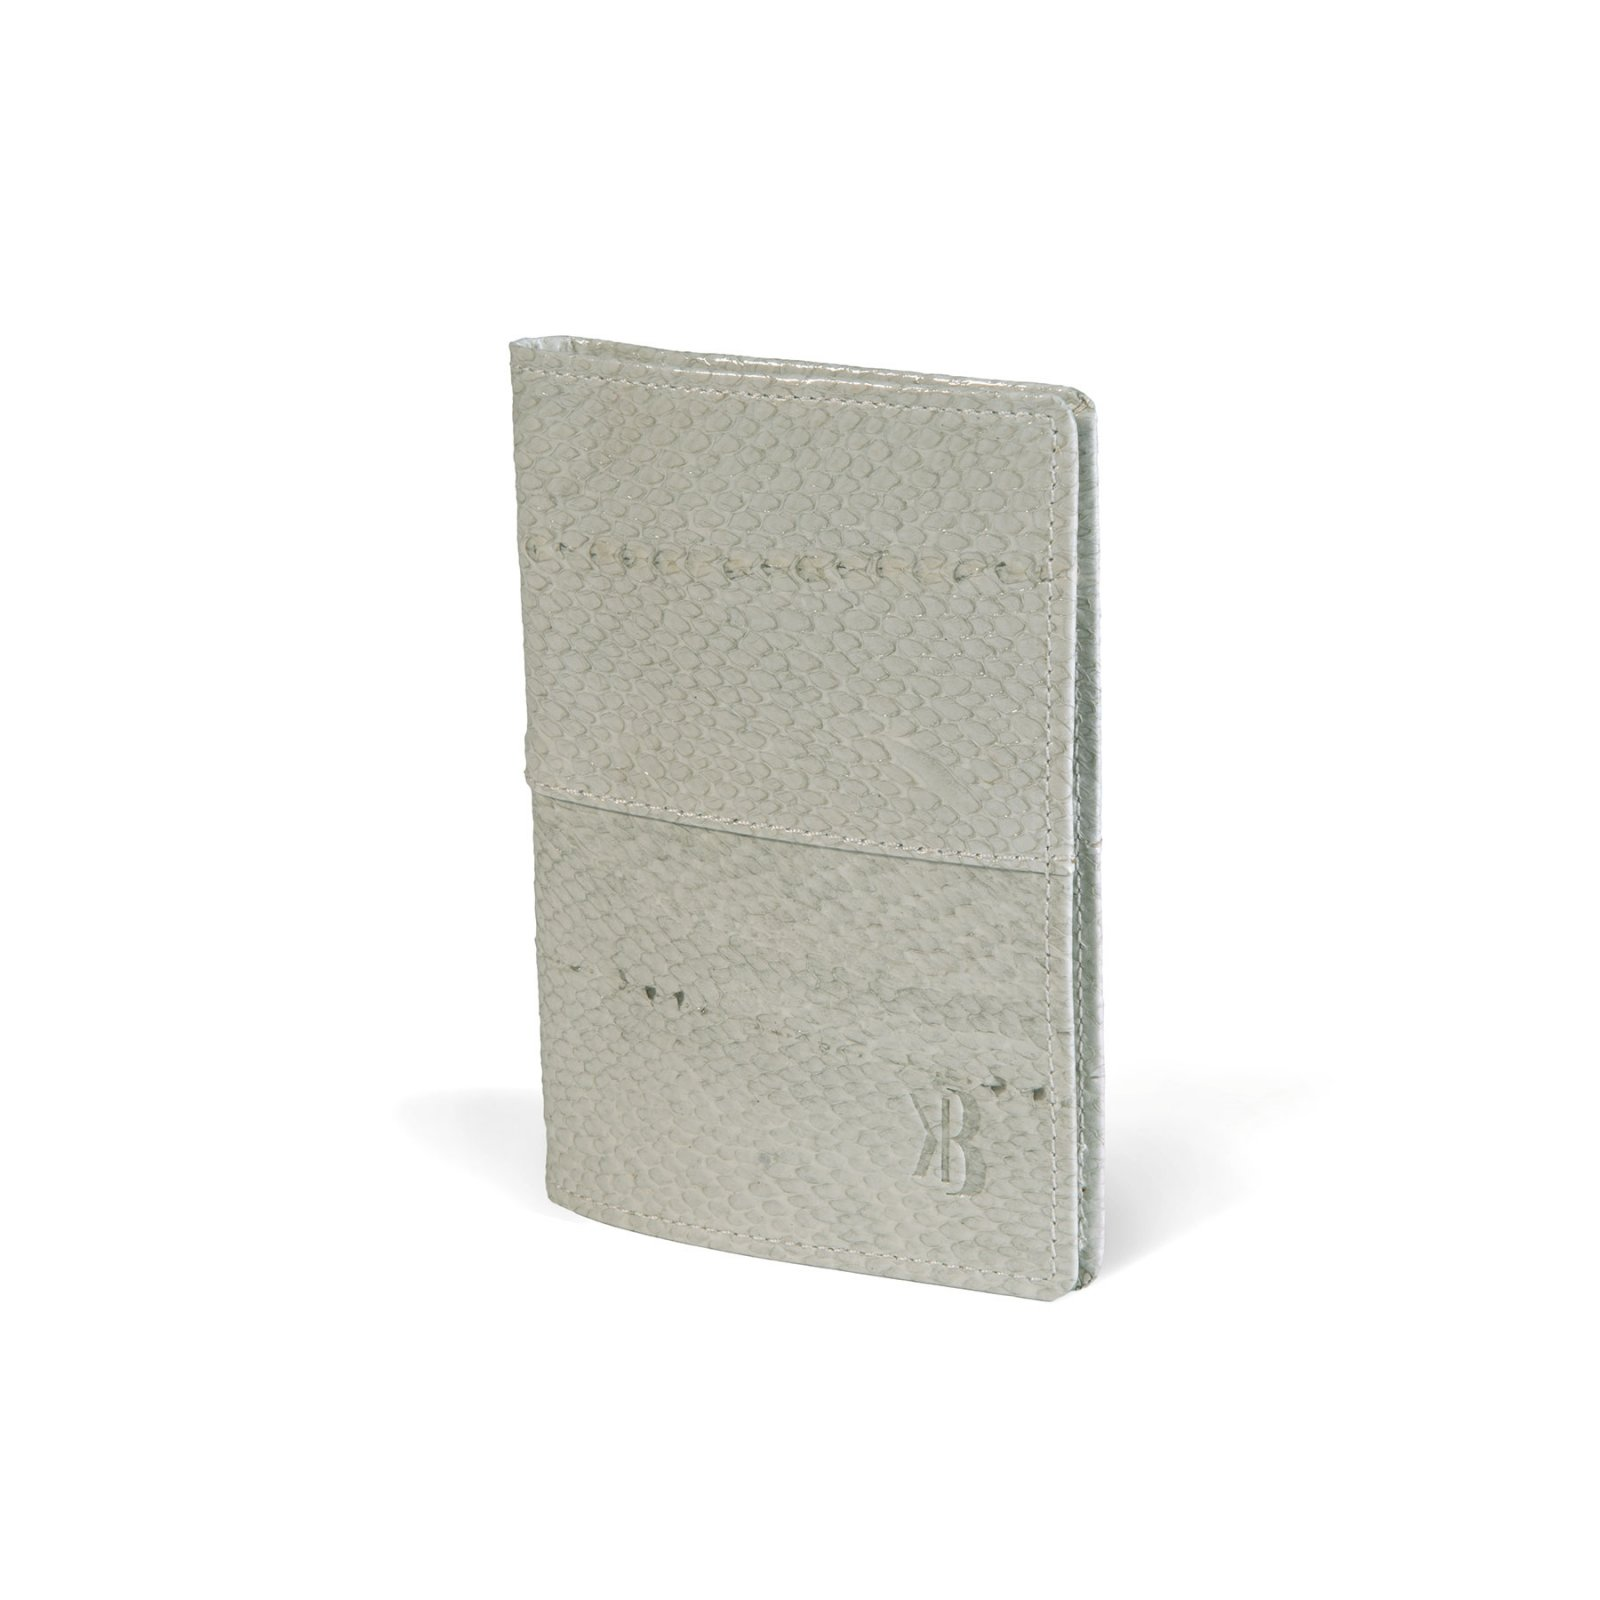 renee-paris-alabaster-banka-passport-holder-1